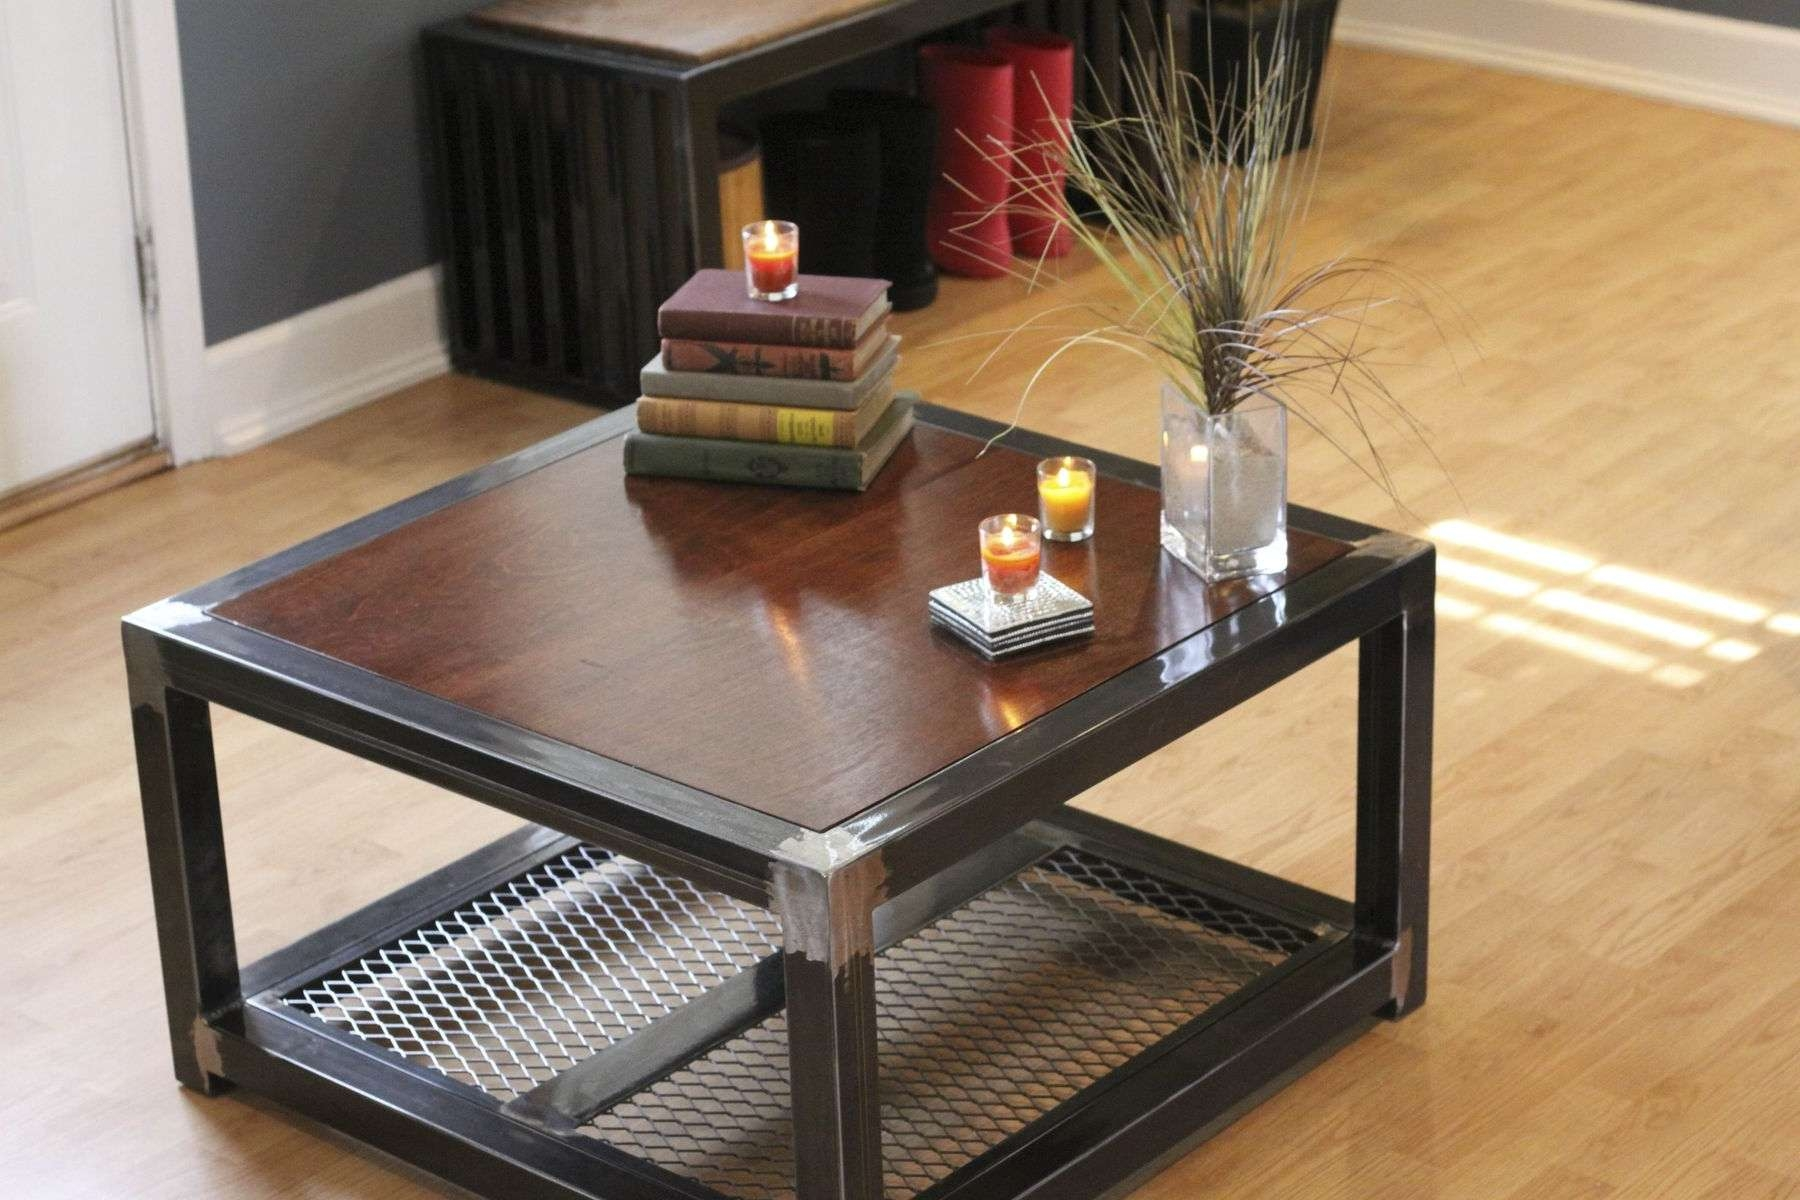 Tea Table Design Furniture Home Decor Amp Interior Exterior ~ Ideas of wood and steel coffee table